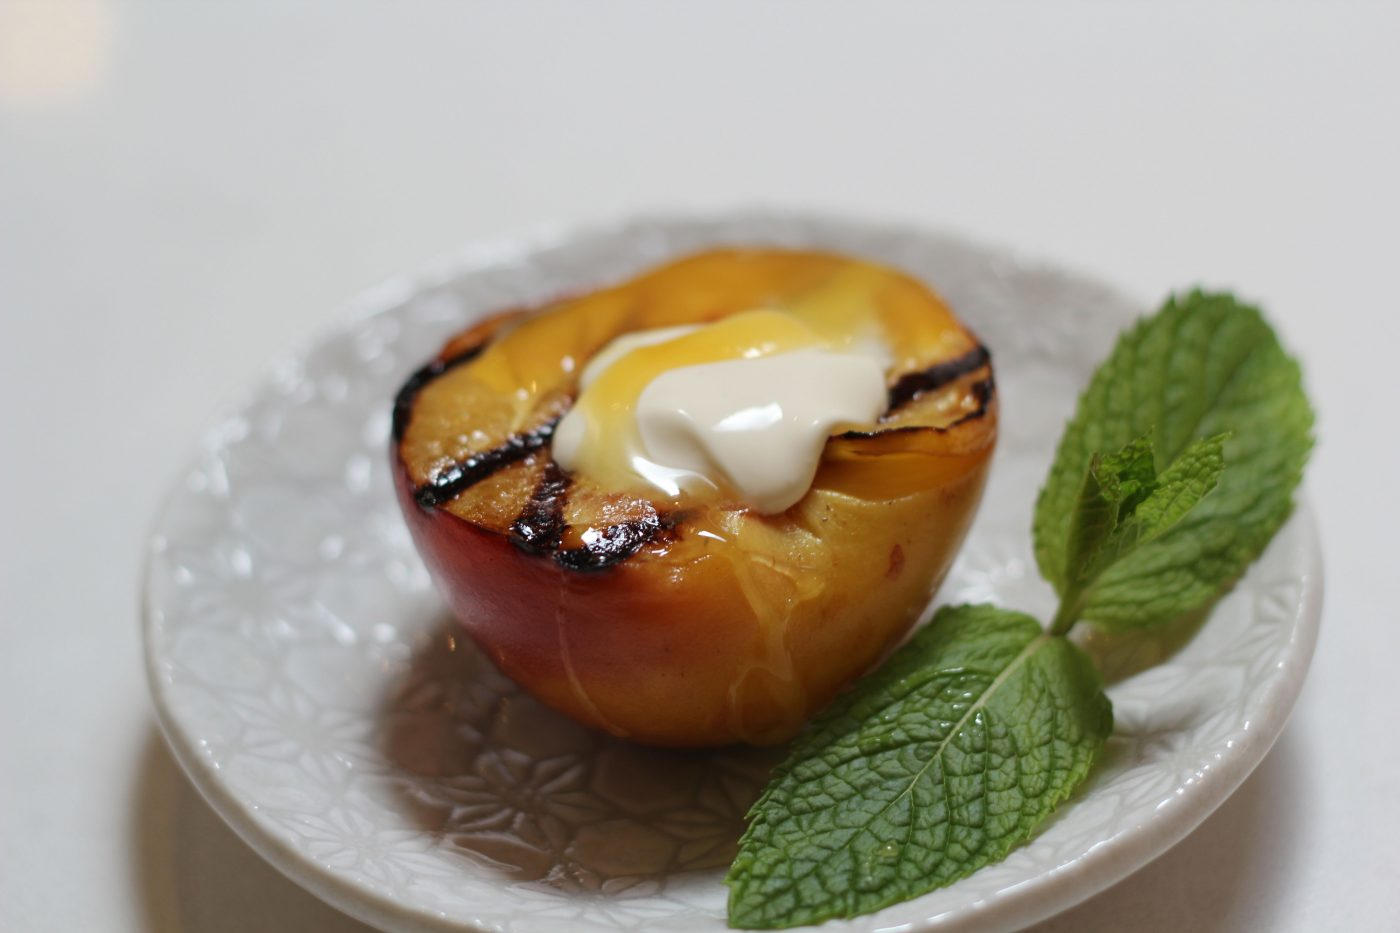 , Everything's just peachy : Barbecue peaches recipe